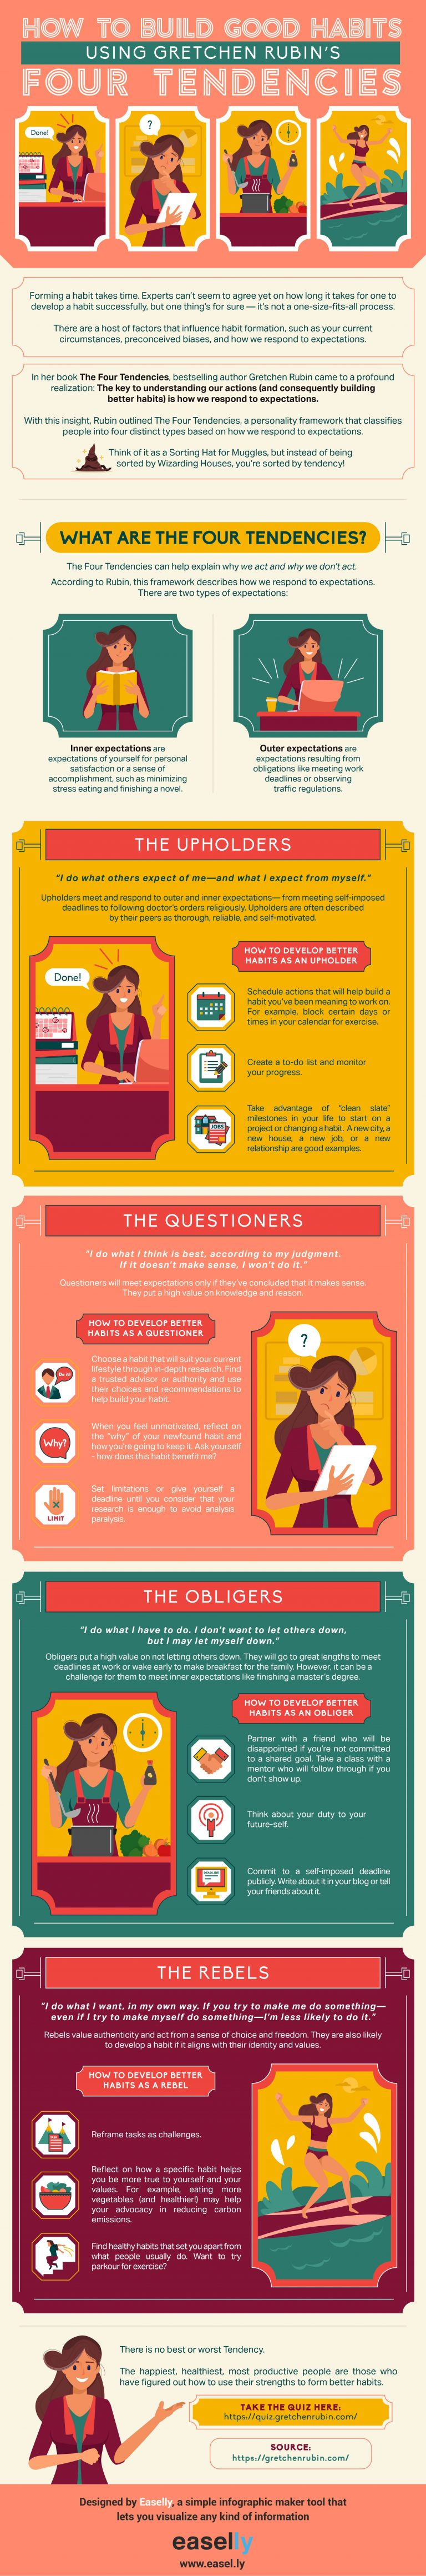 How to Build Better Habits Using Gretchen Rubin's The Four Tendencies infographic